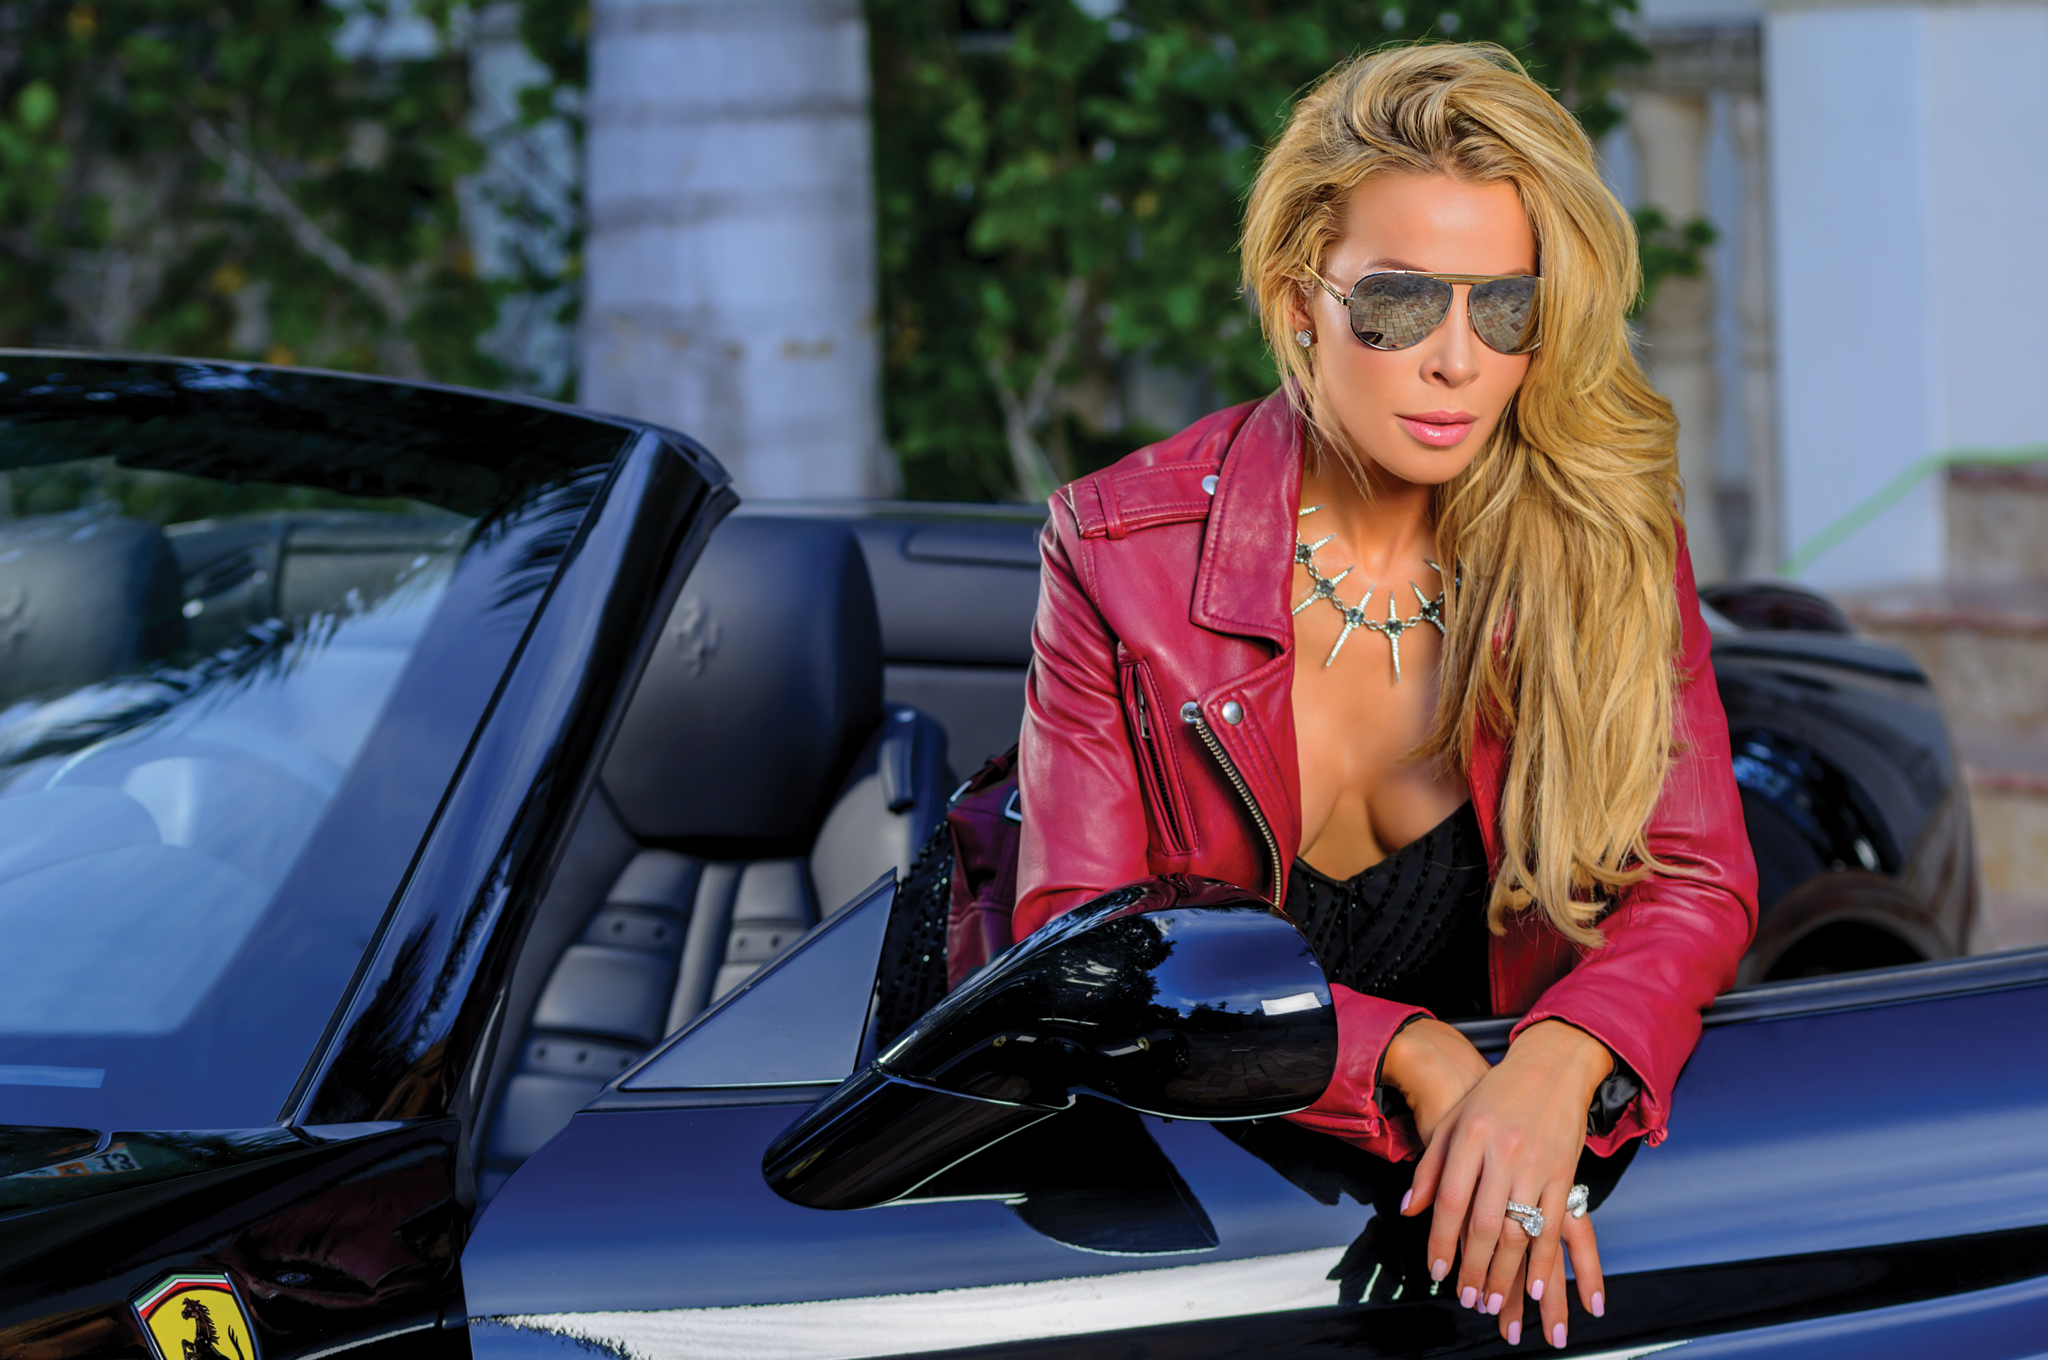 Celebrity Drive: 'Real Housewives' Star Lisa Hochstein And